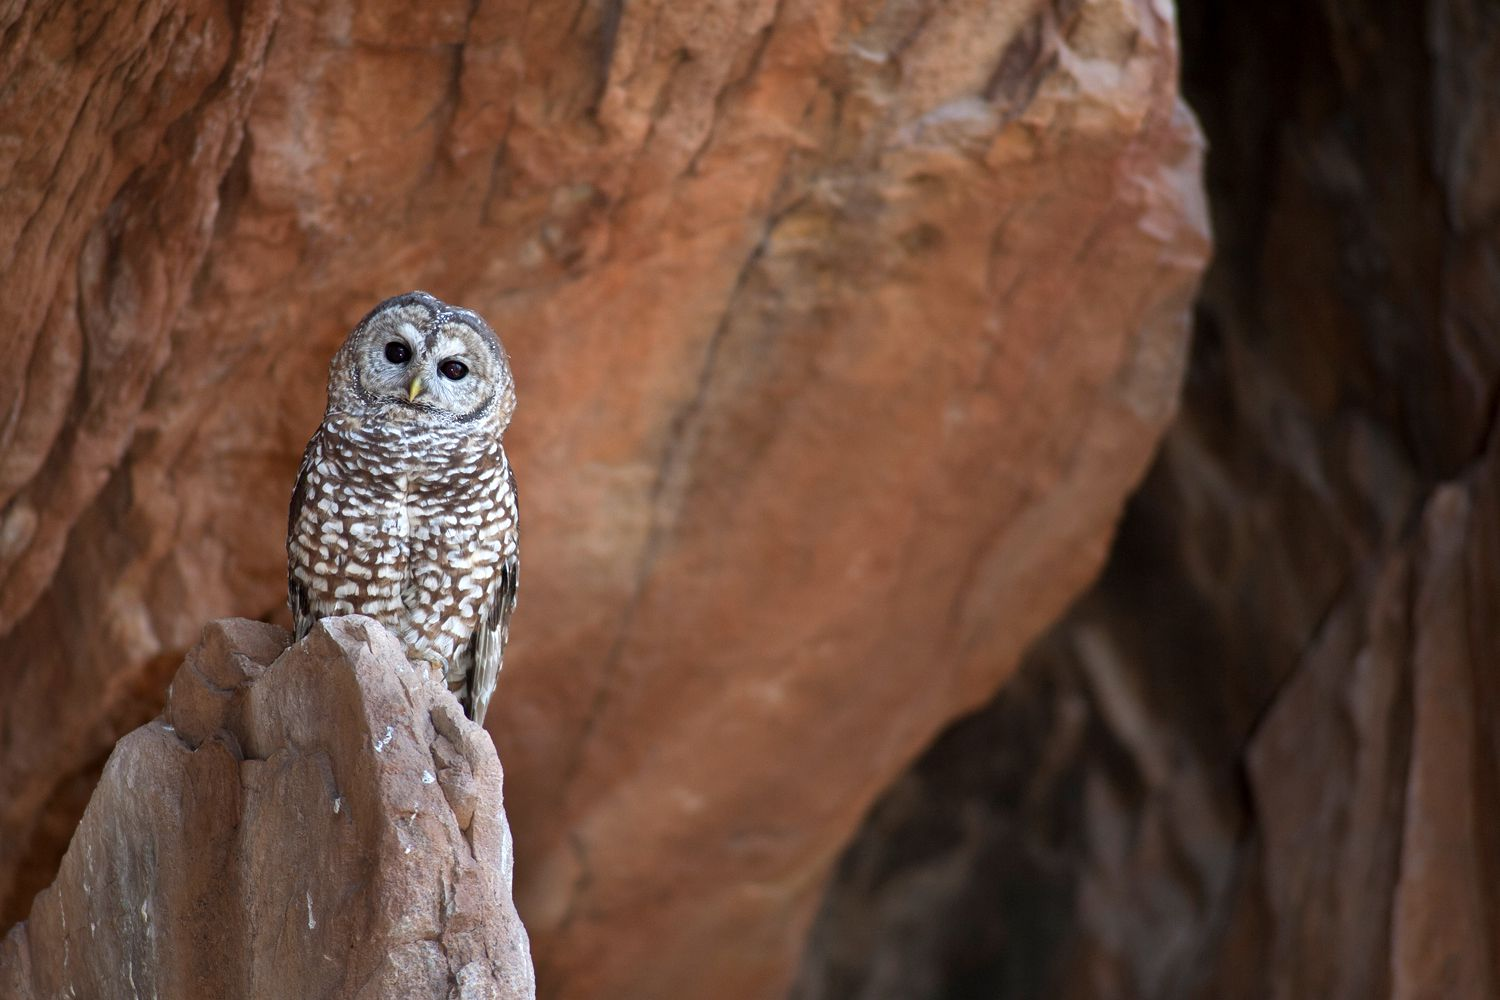 Mexican spotted owl on a rock